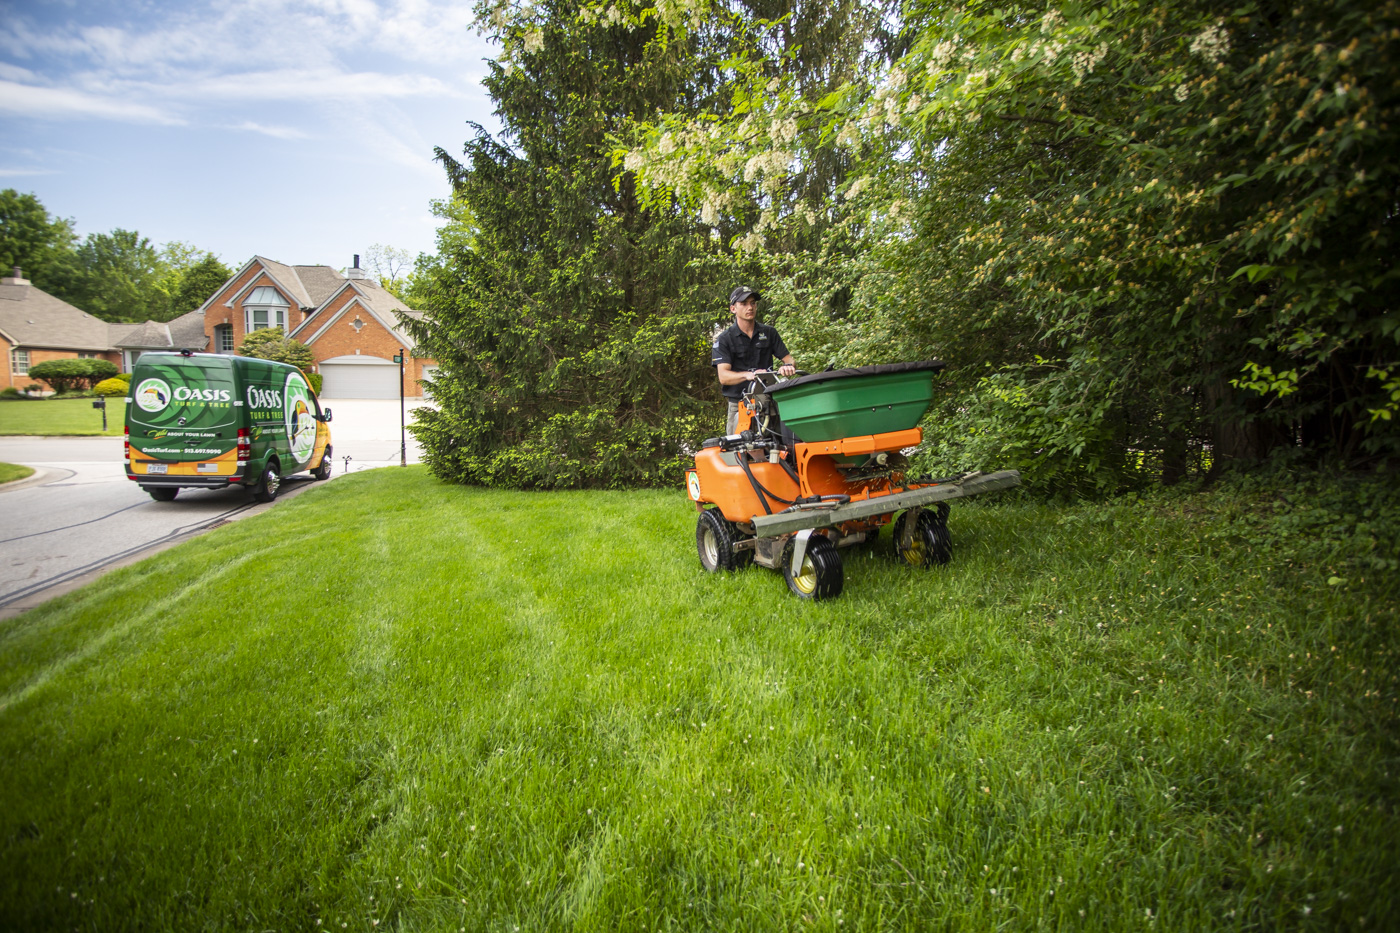 Oasis lawn care technician applying fertilizer in northern Kentucky